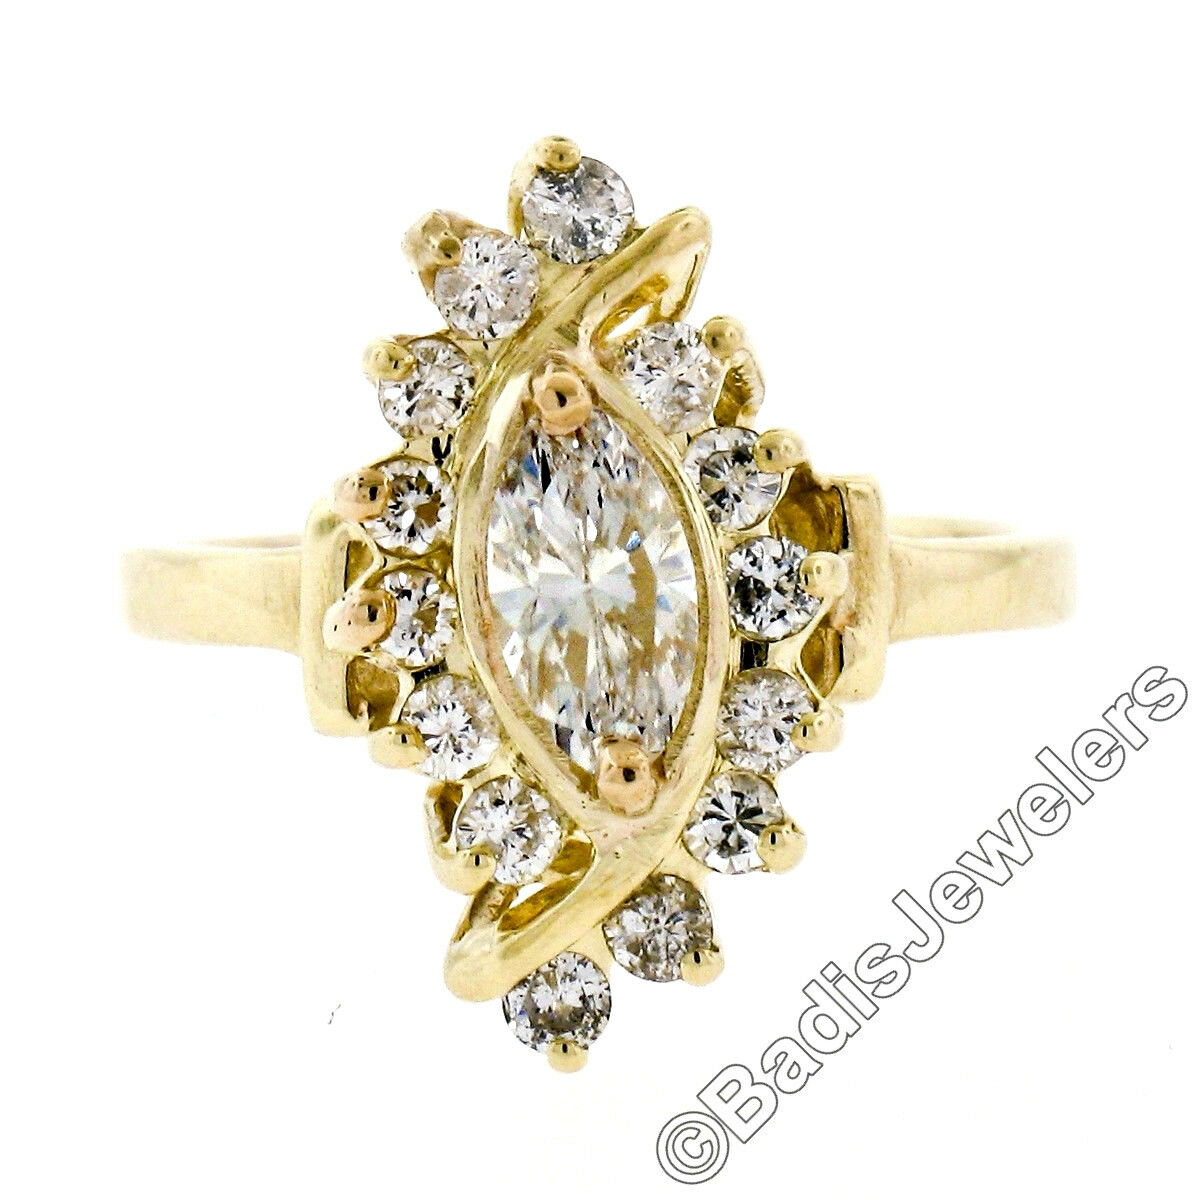 Solid 14K Yellow gold 0.83ctw Marquise Cut Solitaire Diamond Halo Bypass Ring